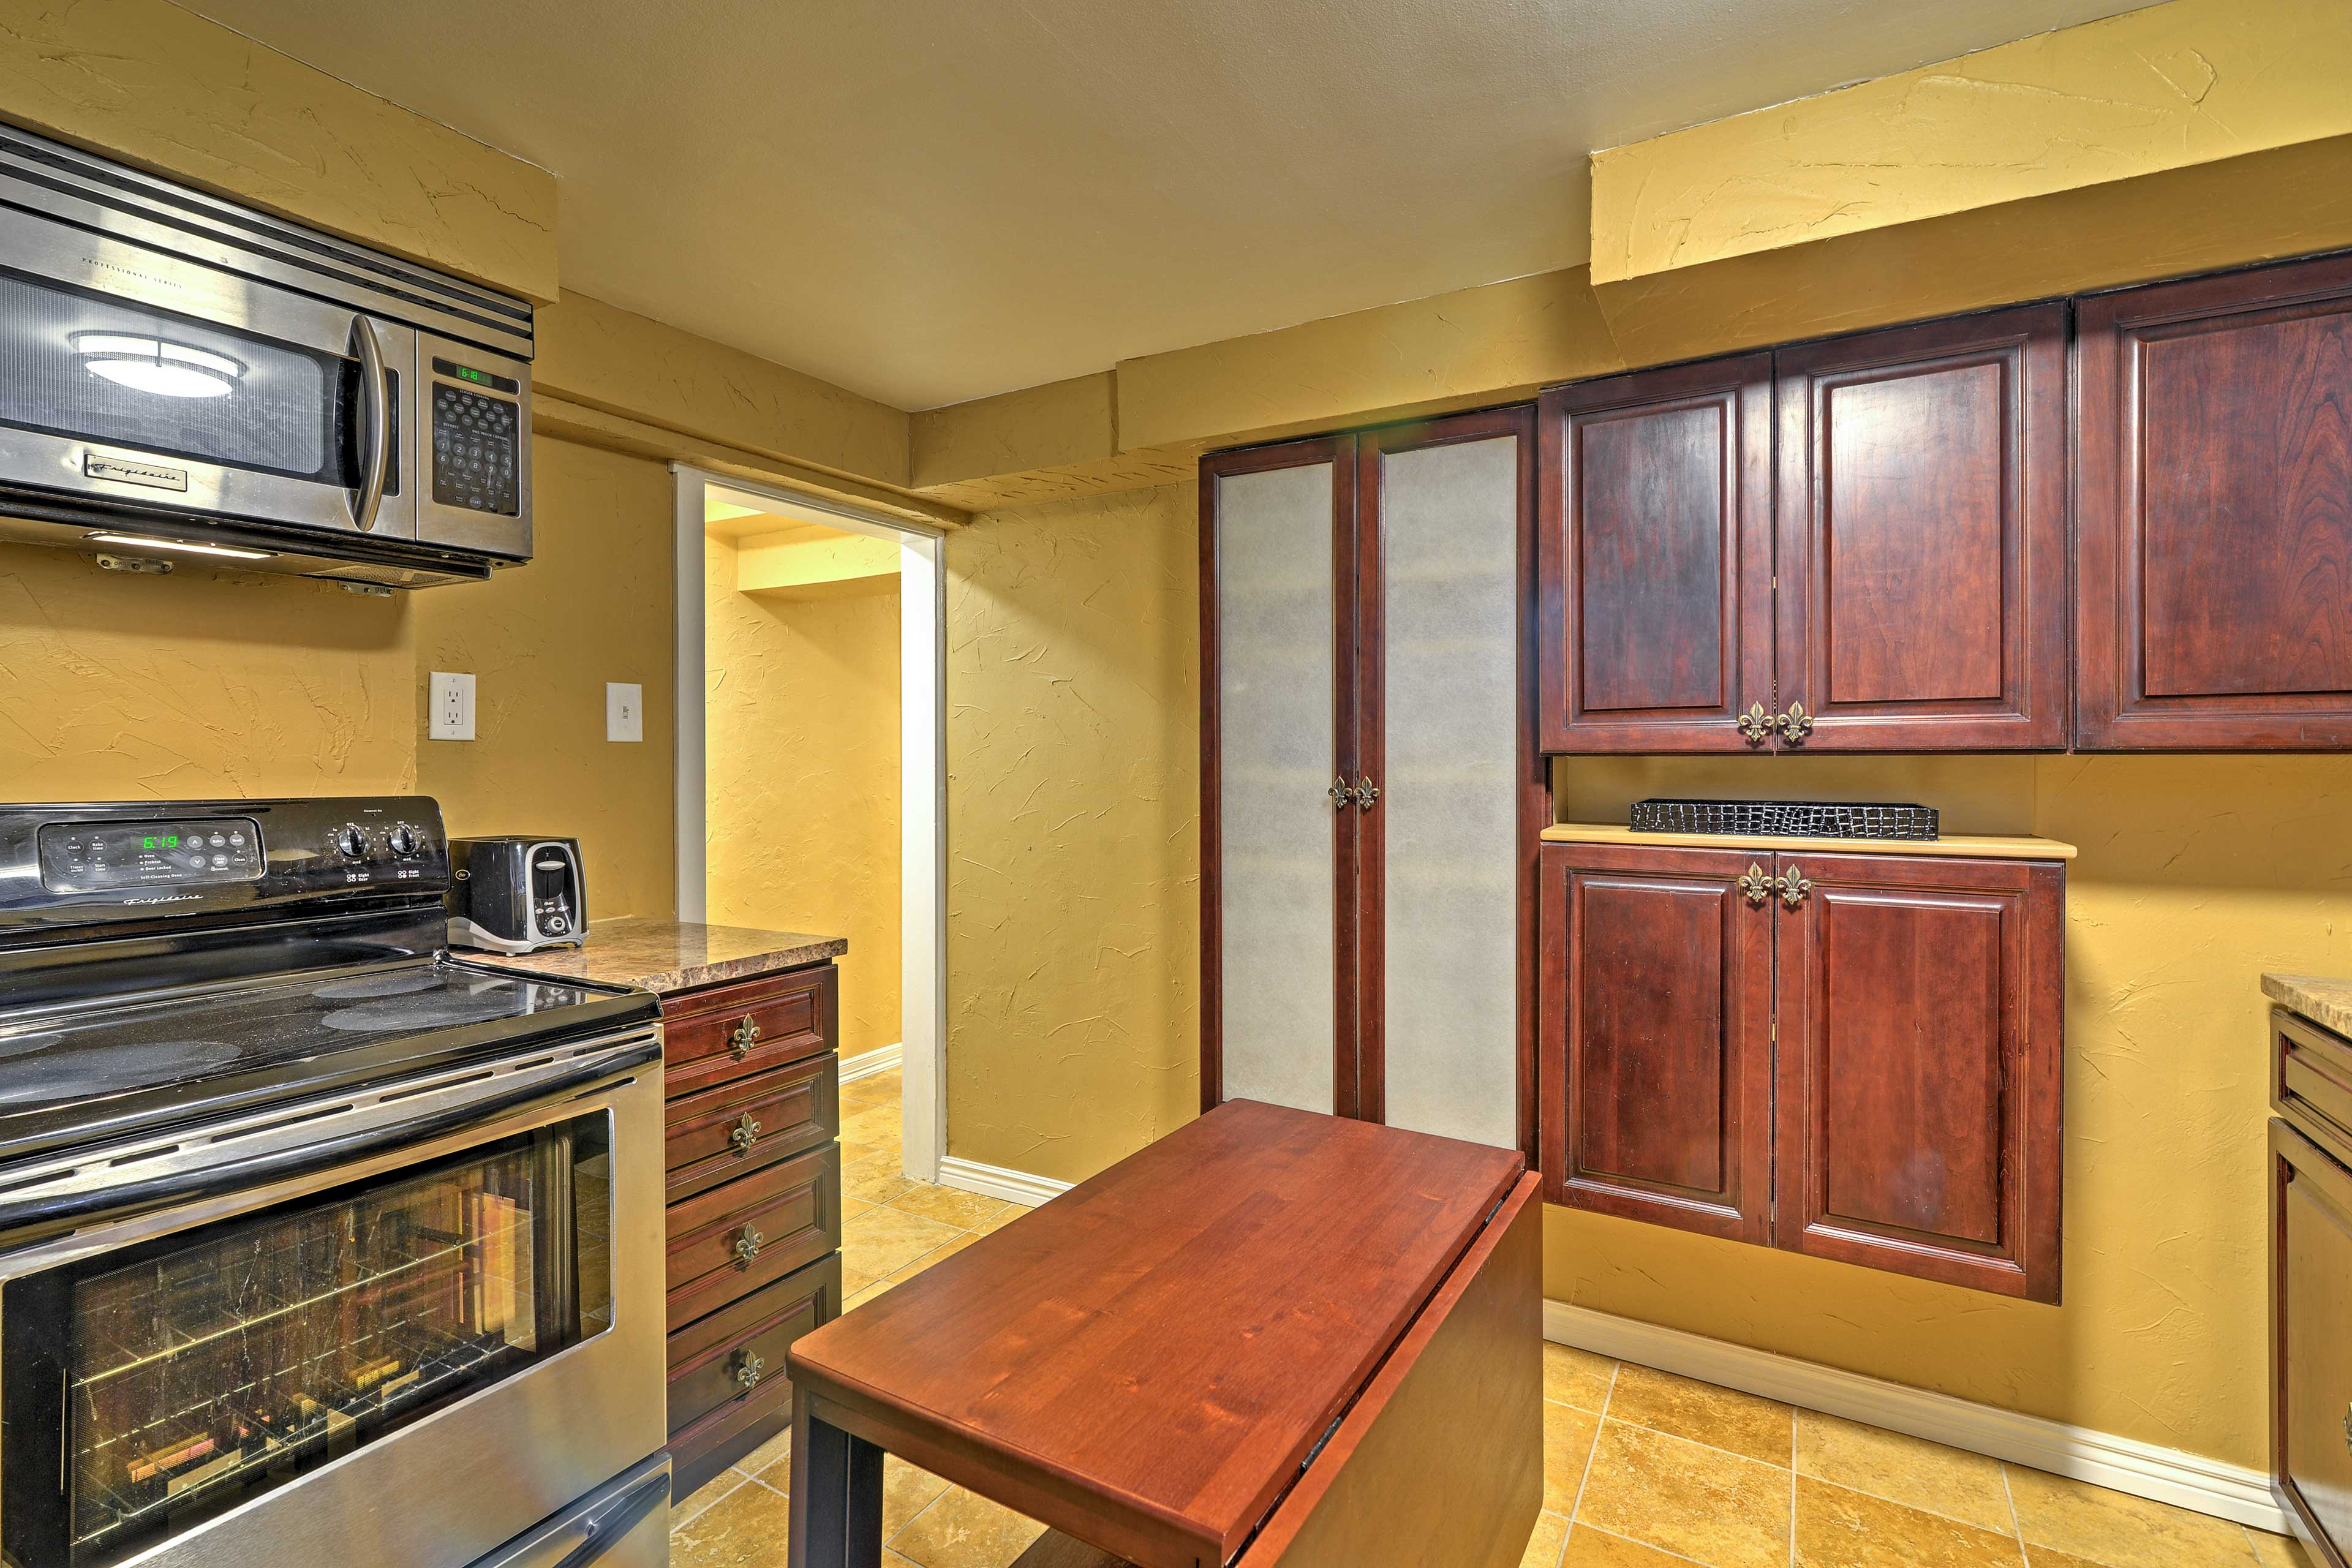 The kitchen features all appliances necessary.